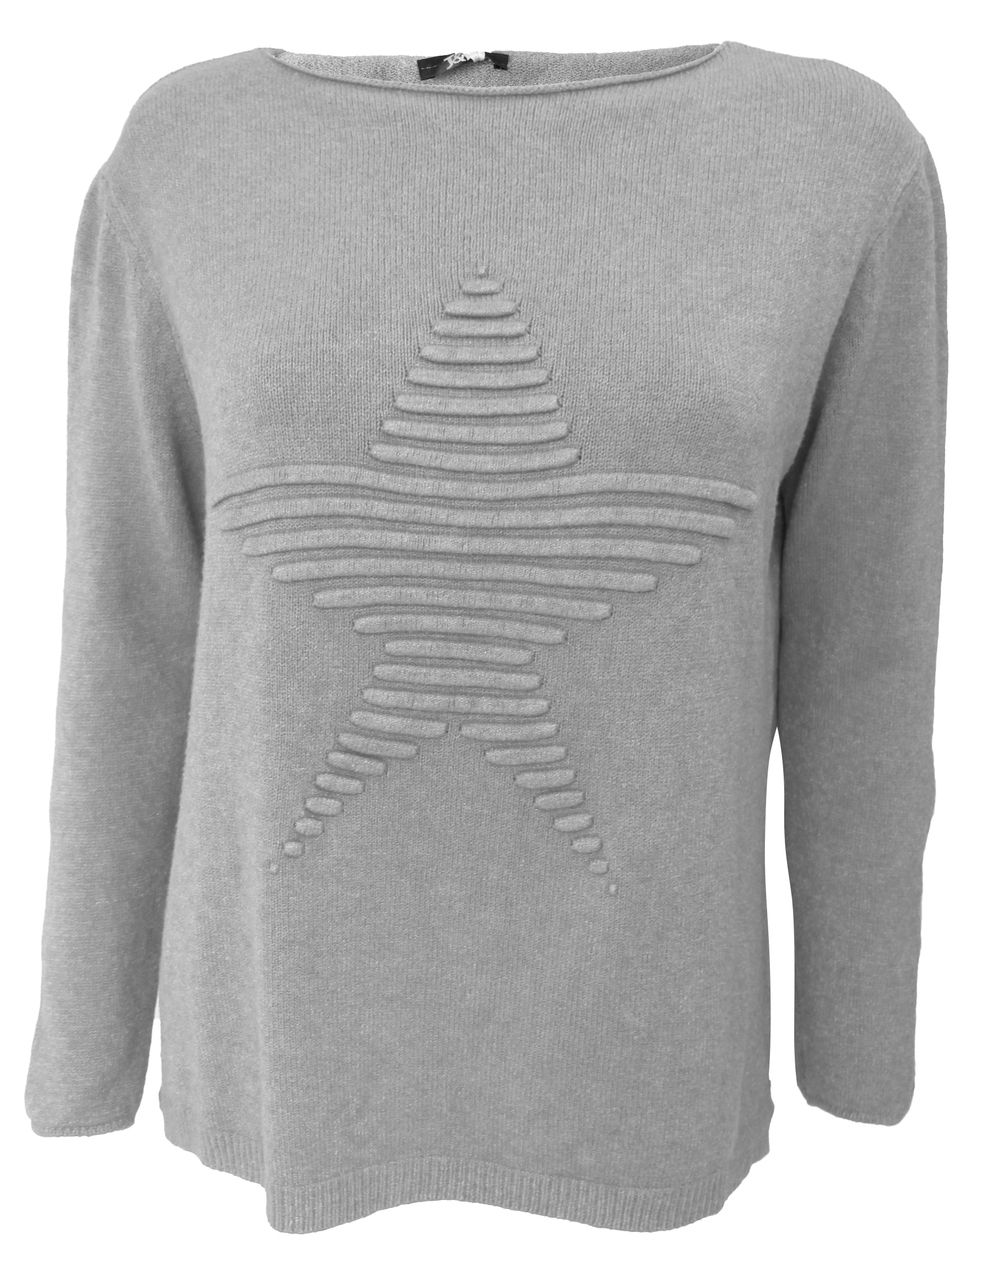 Jumper Knitting Kits Uk : Italian super soft grey knit jumper with a raised ribbed